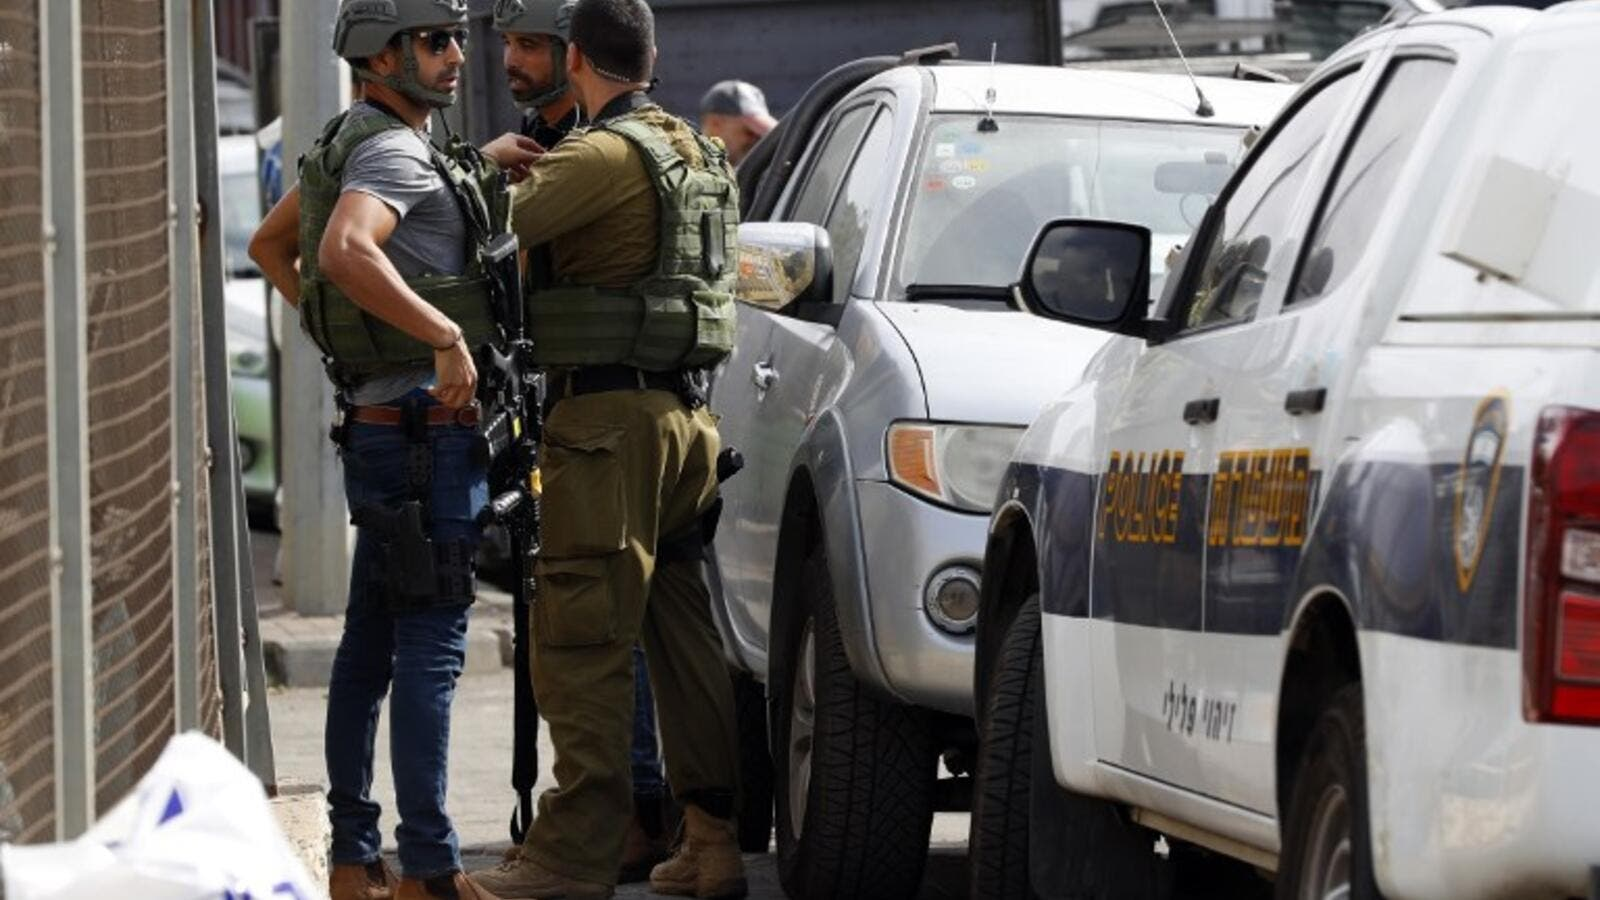 Israeli security forces gather at the site of a reported attack. (Jack GUEZ / AFP)